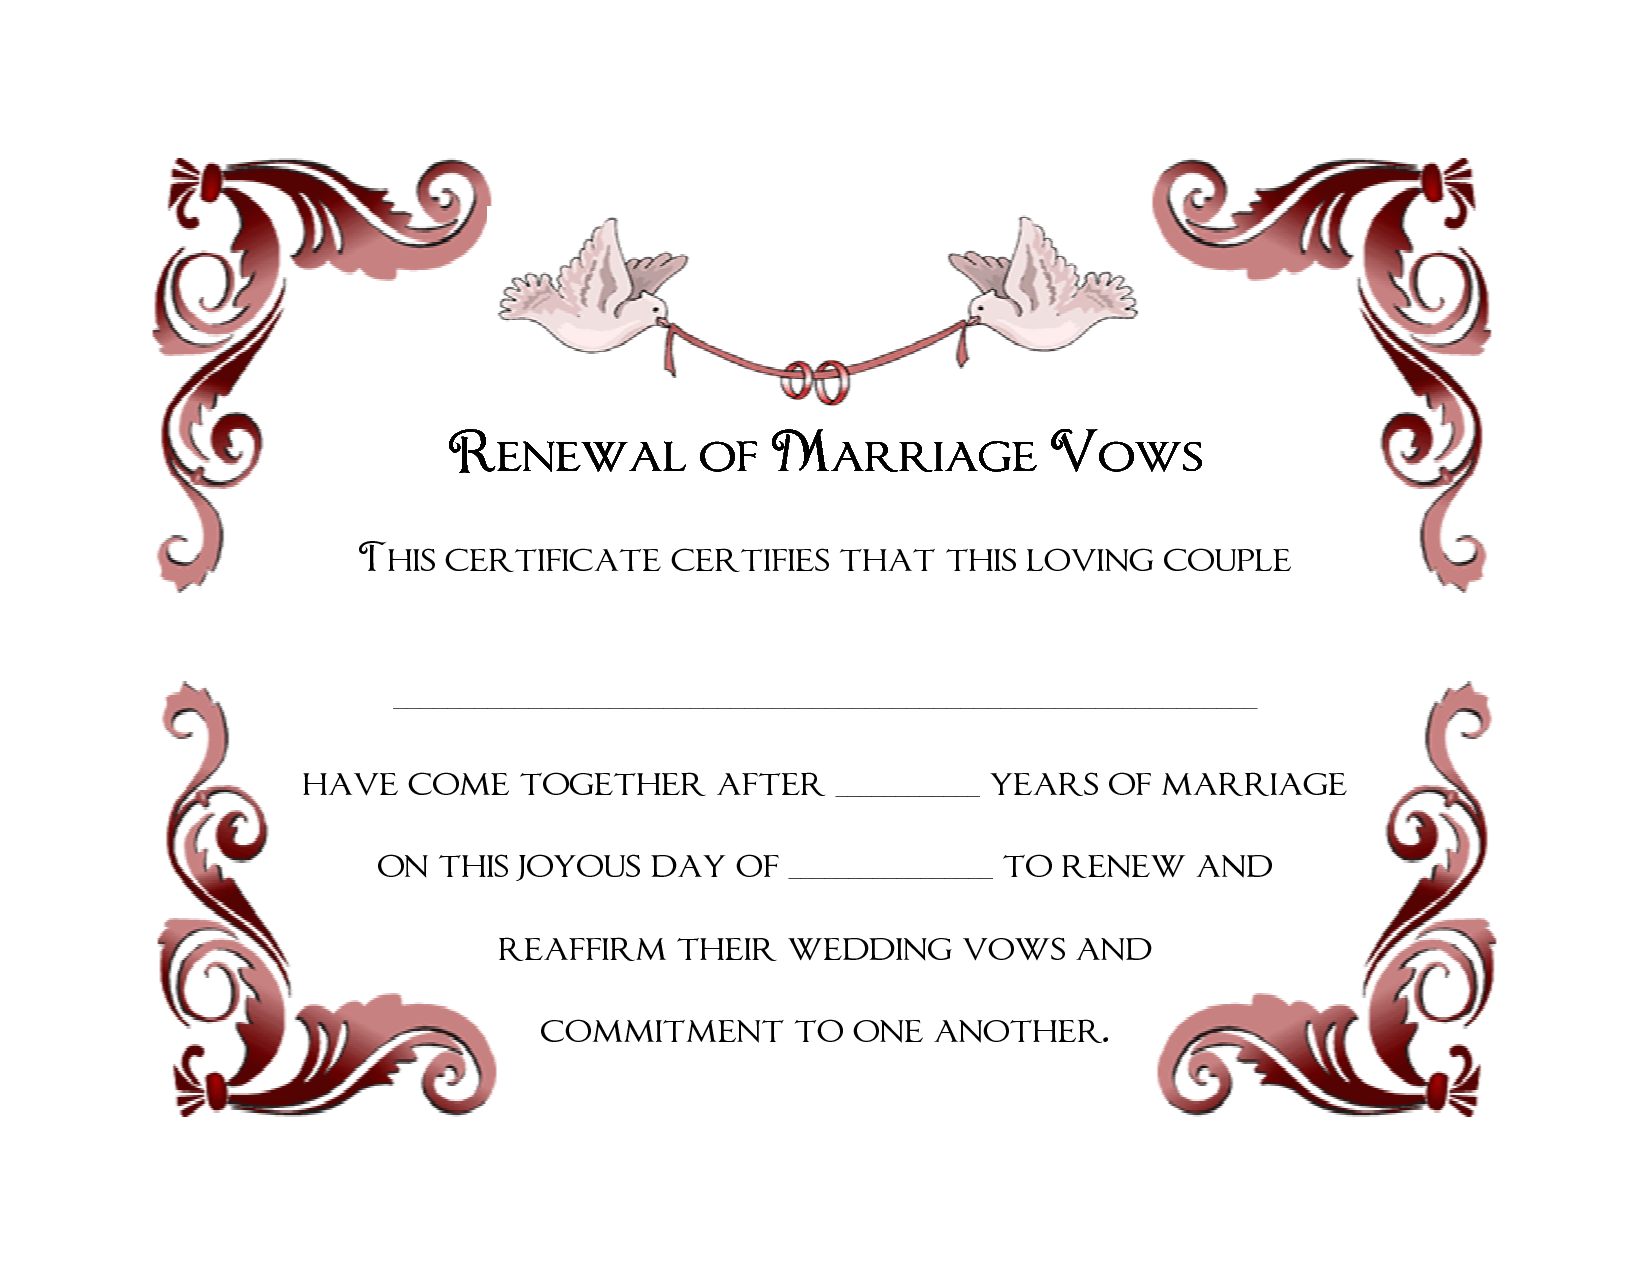 renew wedding vows with renewal of marriage renewal of marriage